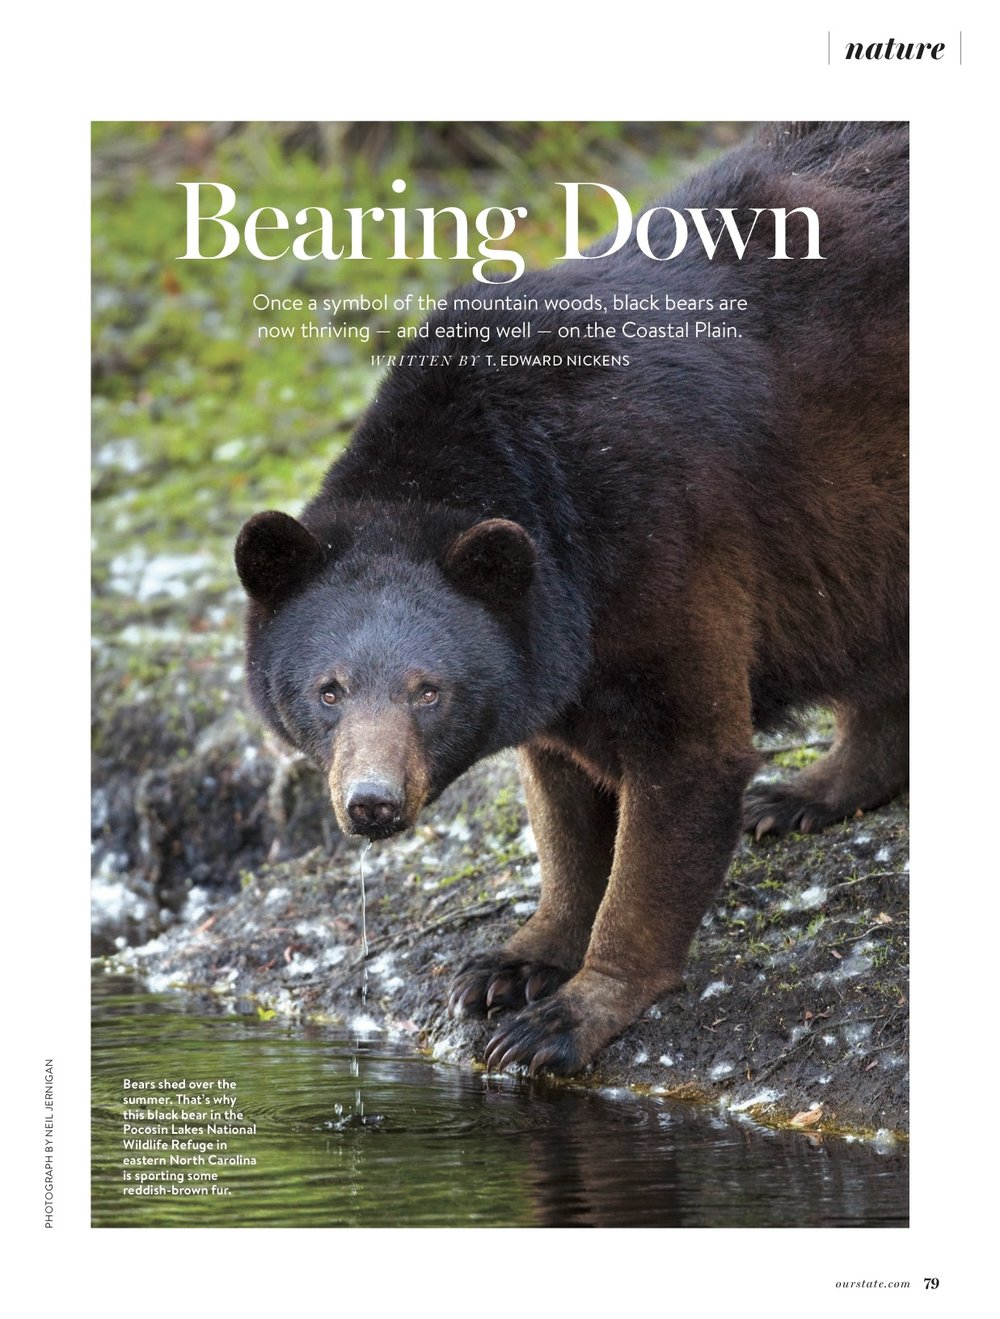 October Issue: Image a Black Bear drinking on the Pocosin Lakes NWR